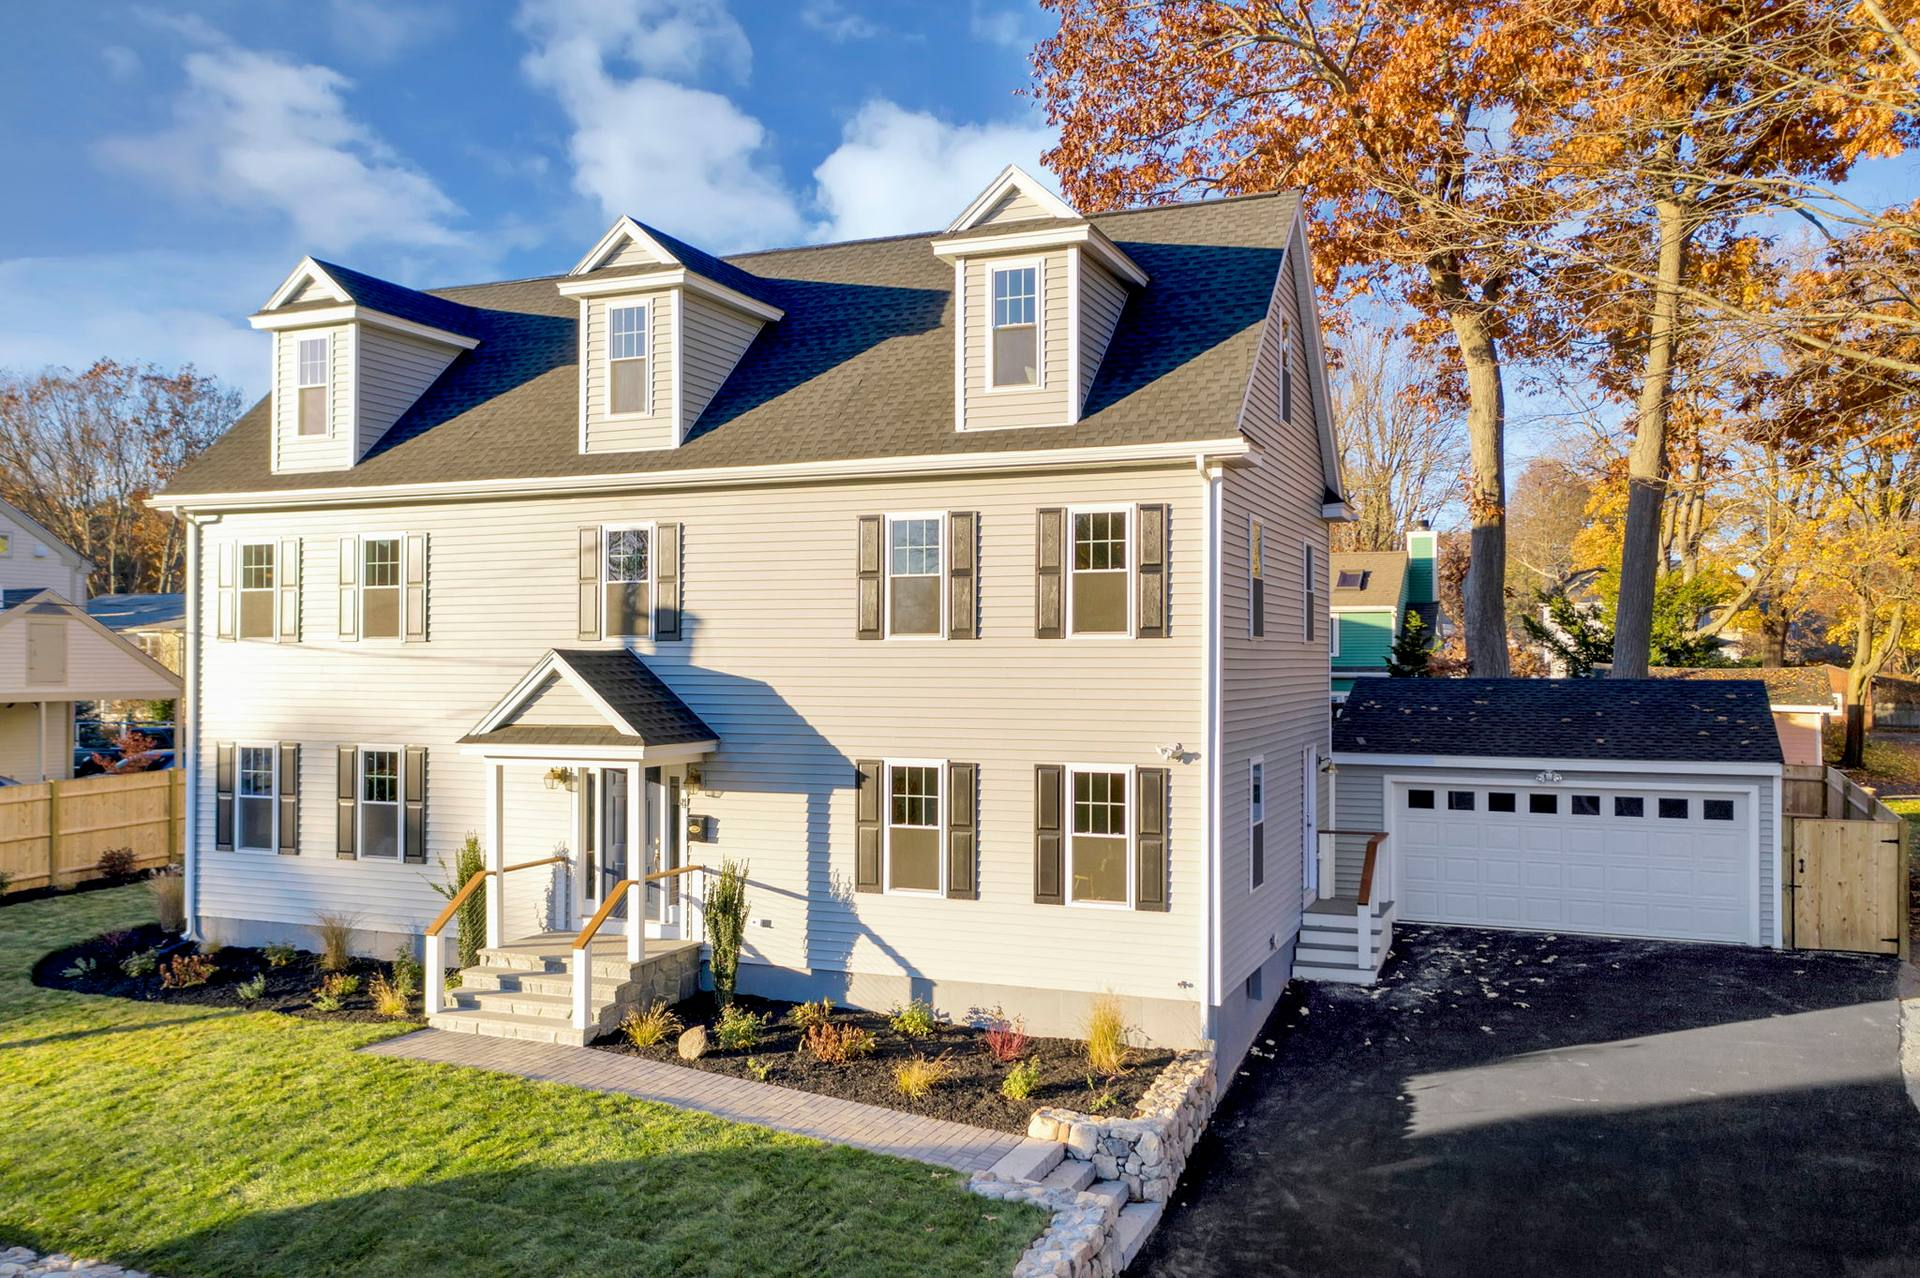 4 Flatley Ave, Manchester-by-the-Sea, MA 01944, US